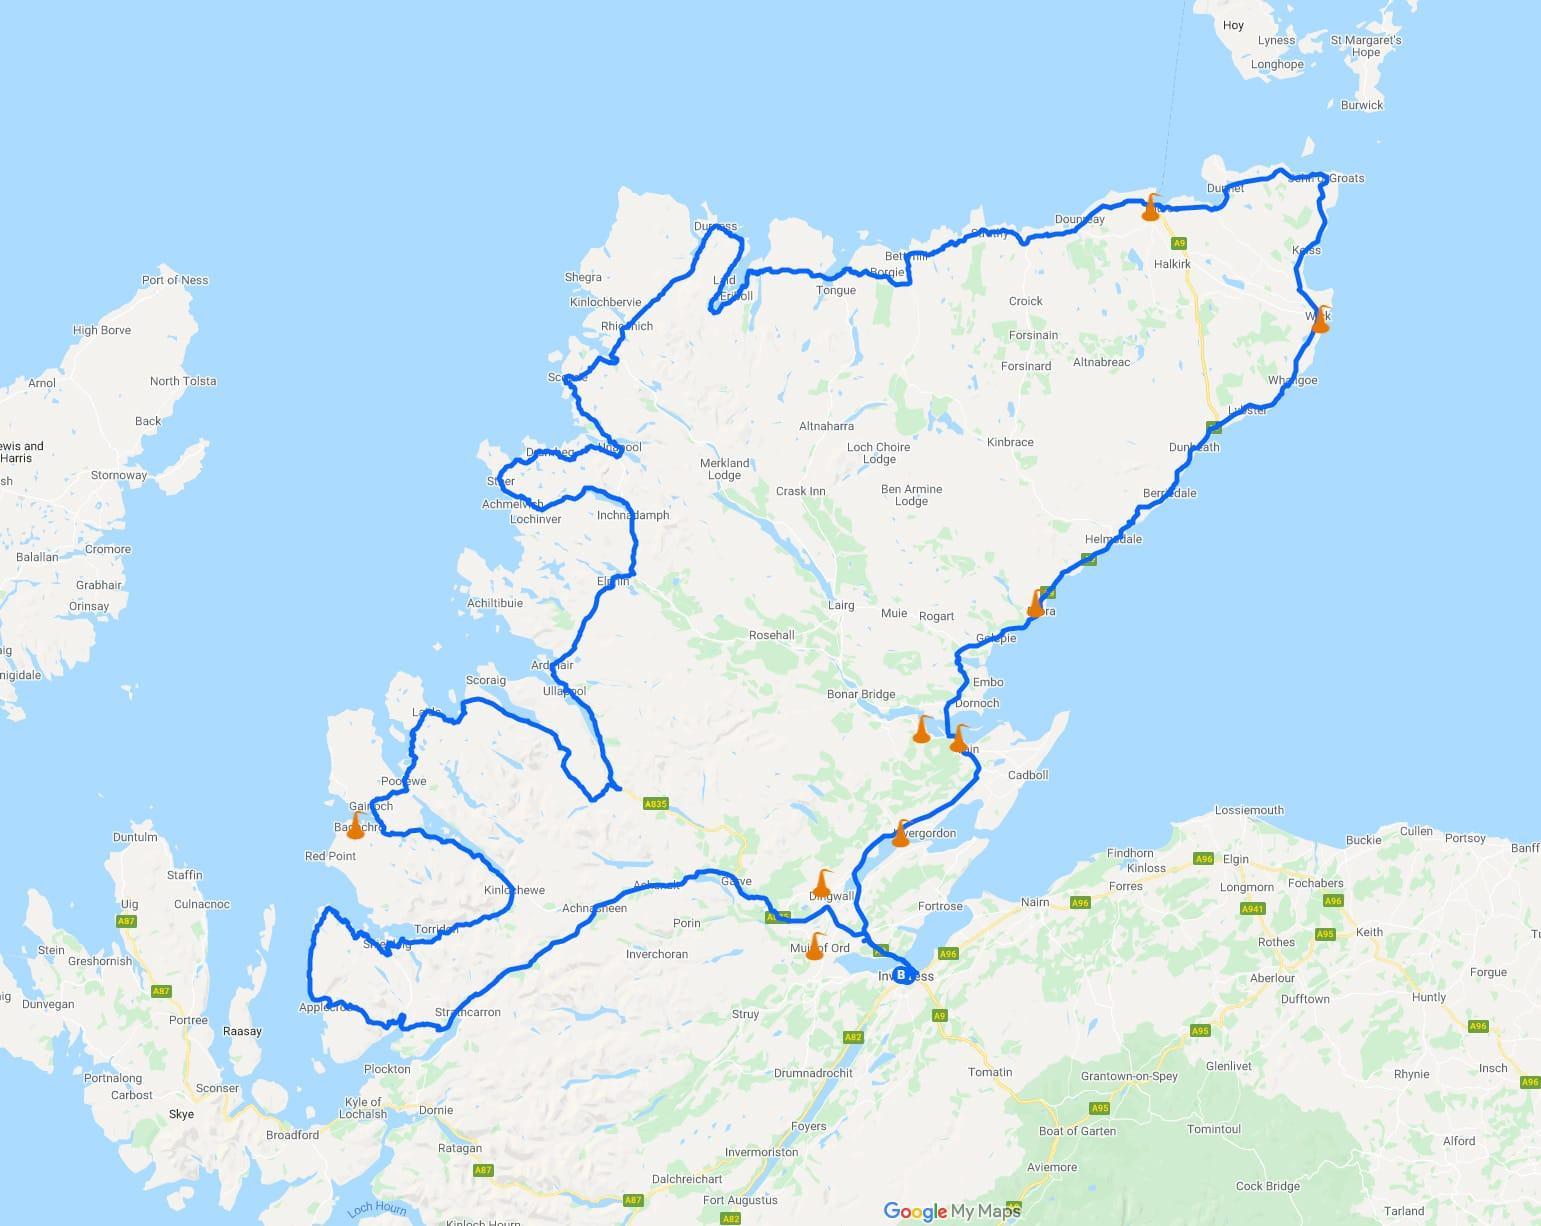 NC500 Whisky Distilleries and Map